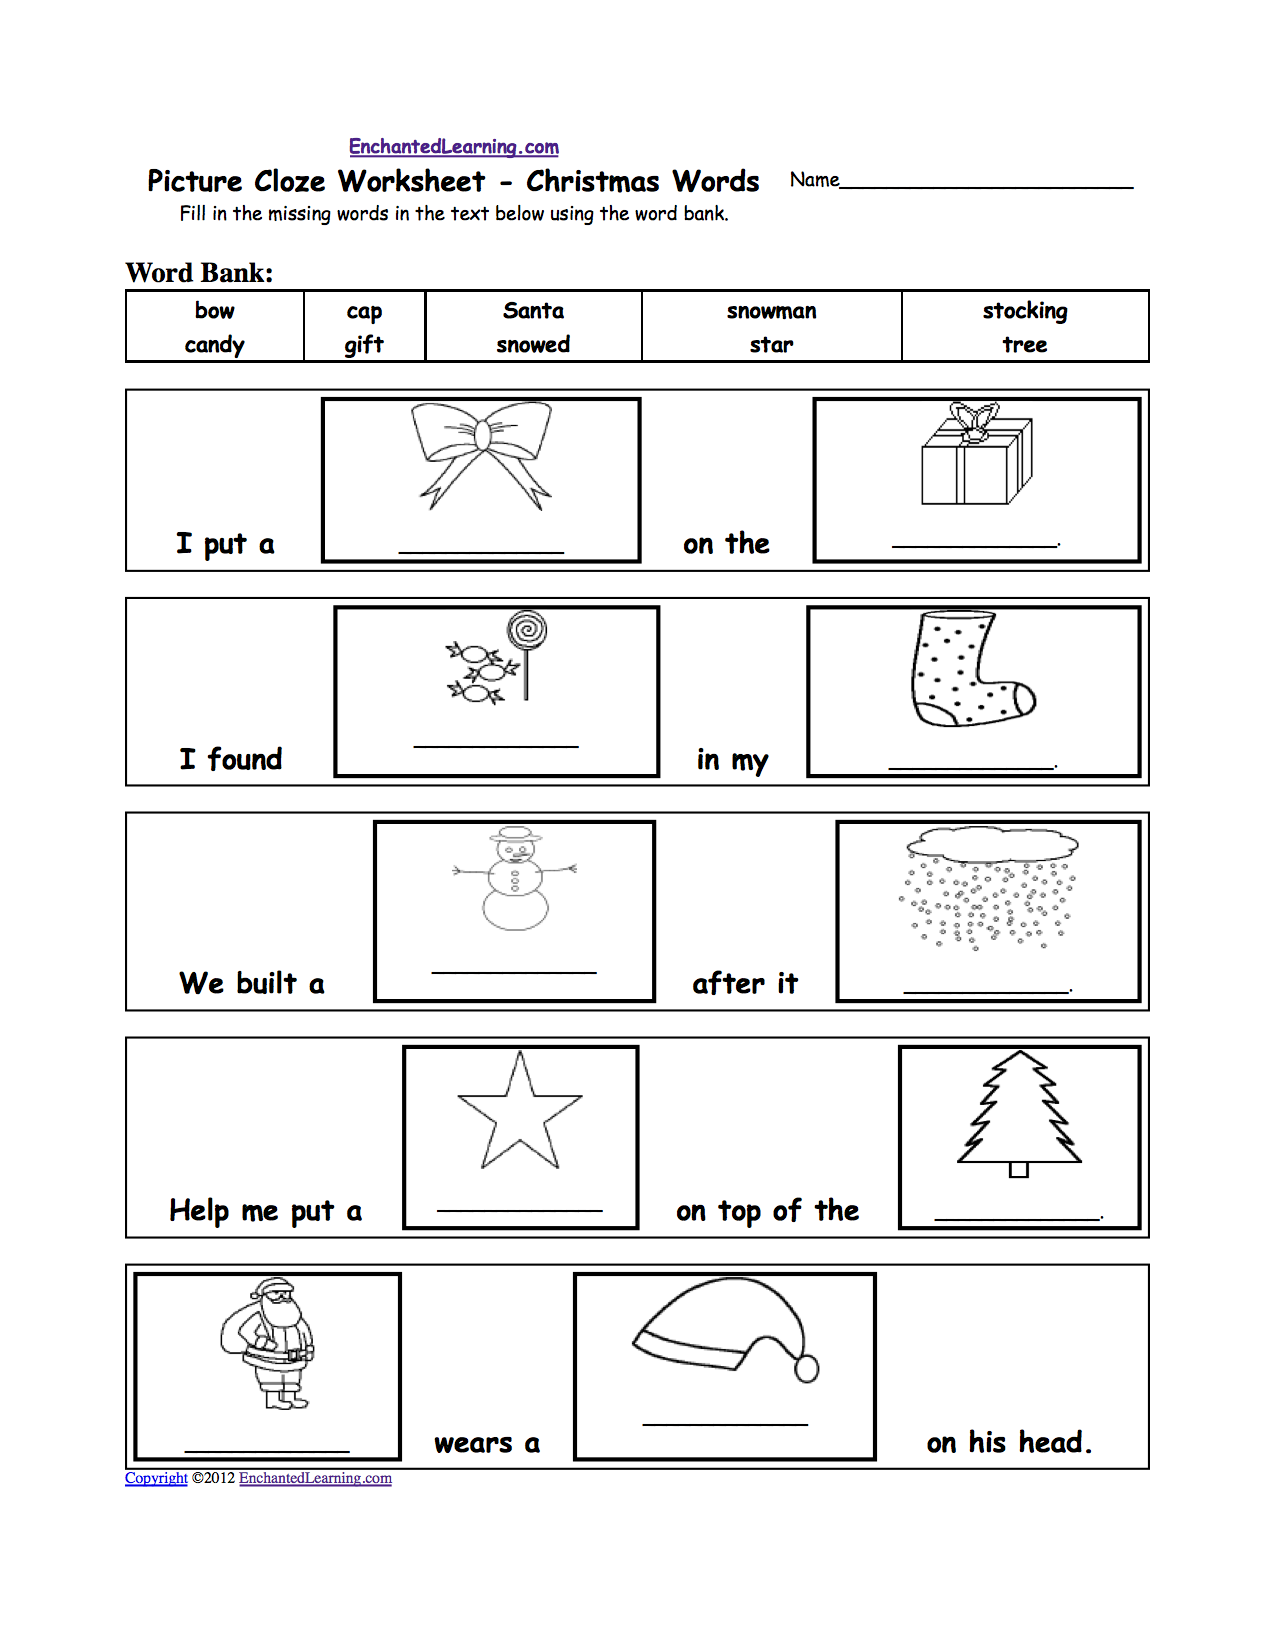 Uncategorized Christmas Worksheets For Kids christmas crafts for kids enchantedlearning com or go to the answers cloze picture words printable worksheet